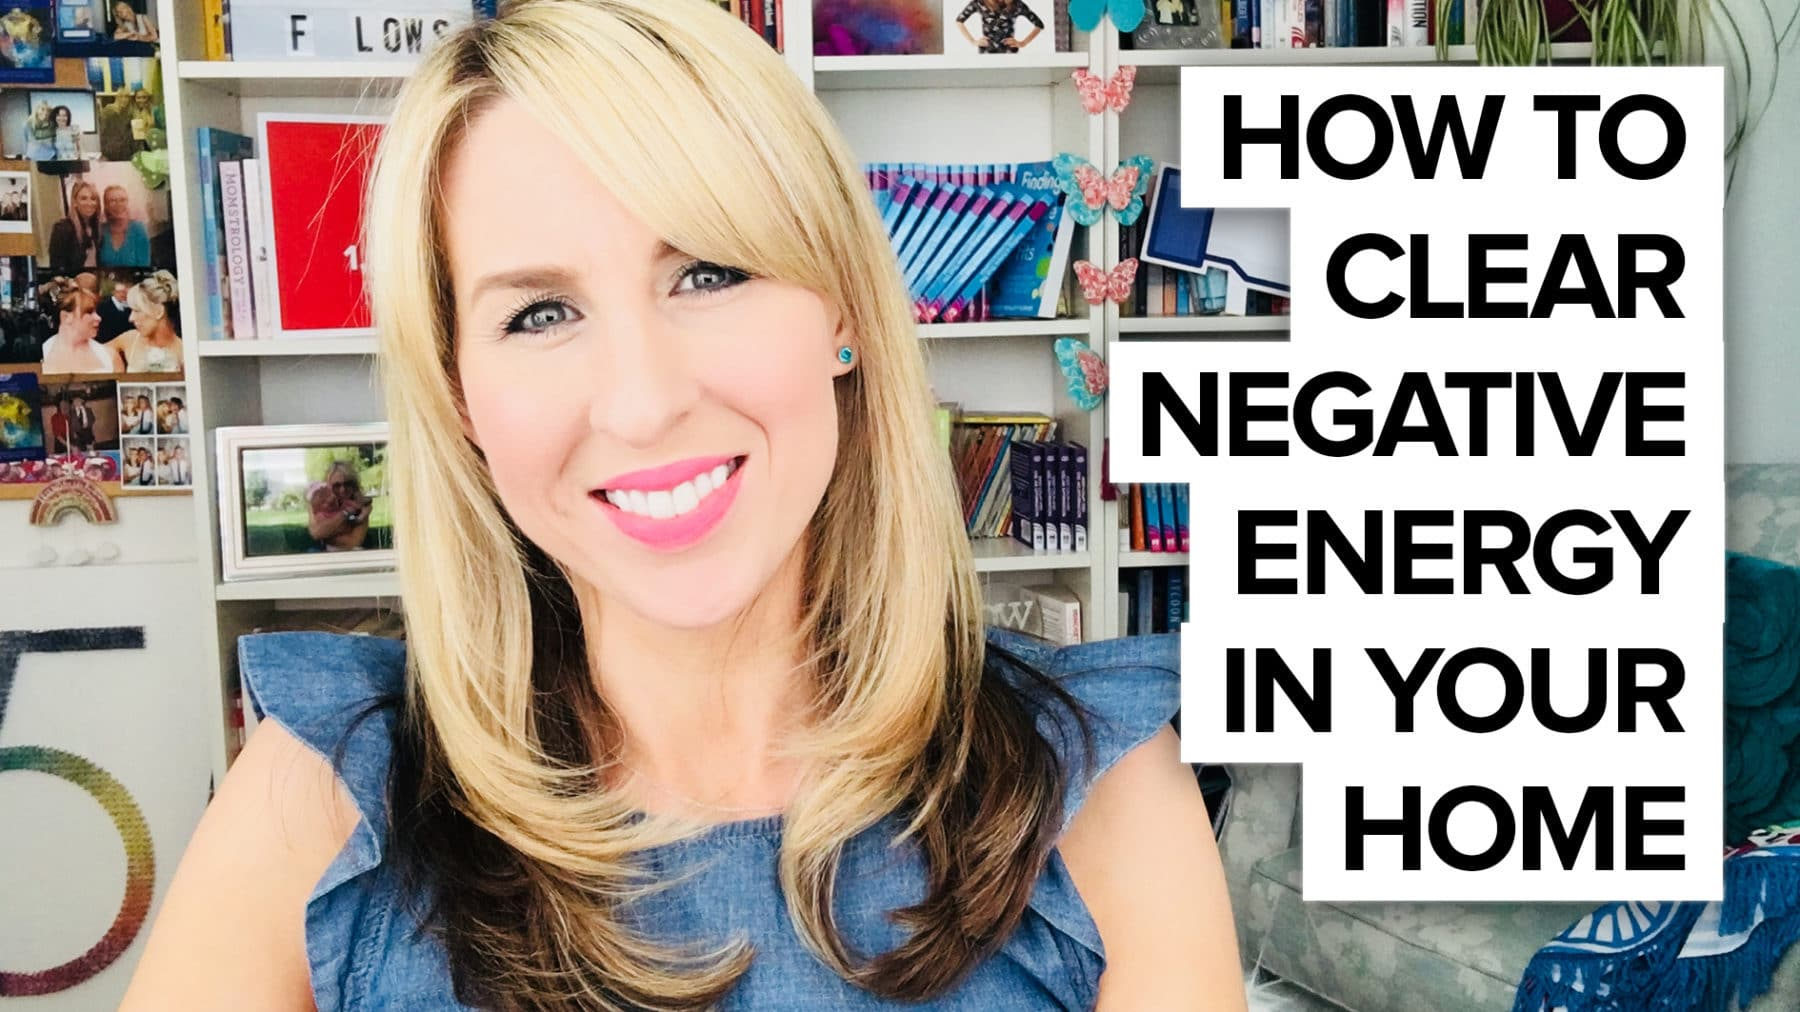 How to clear negative energy in your home